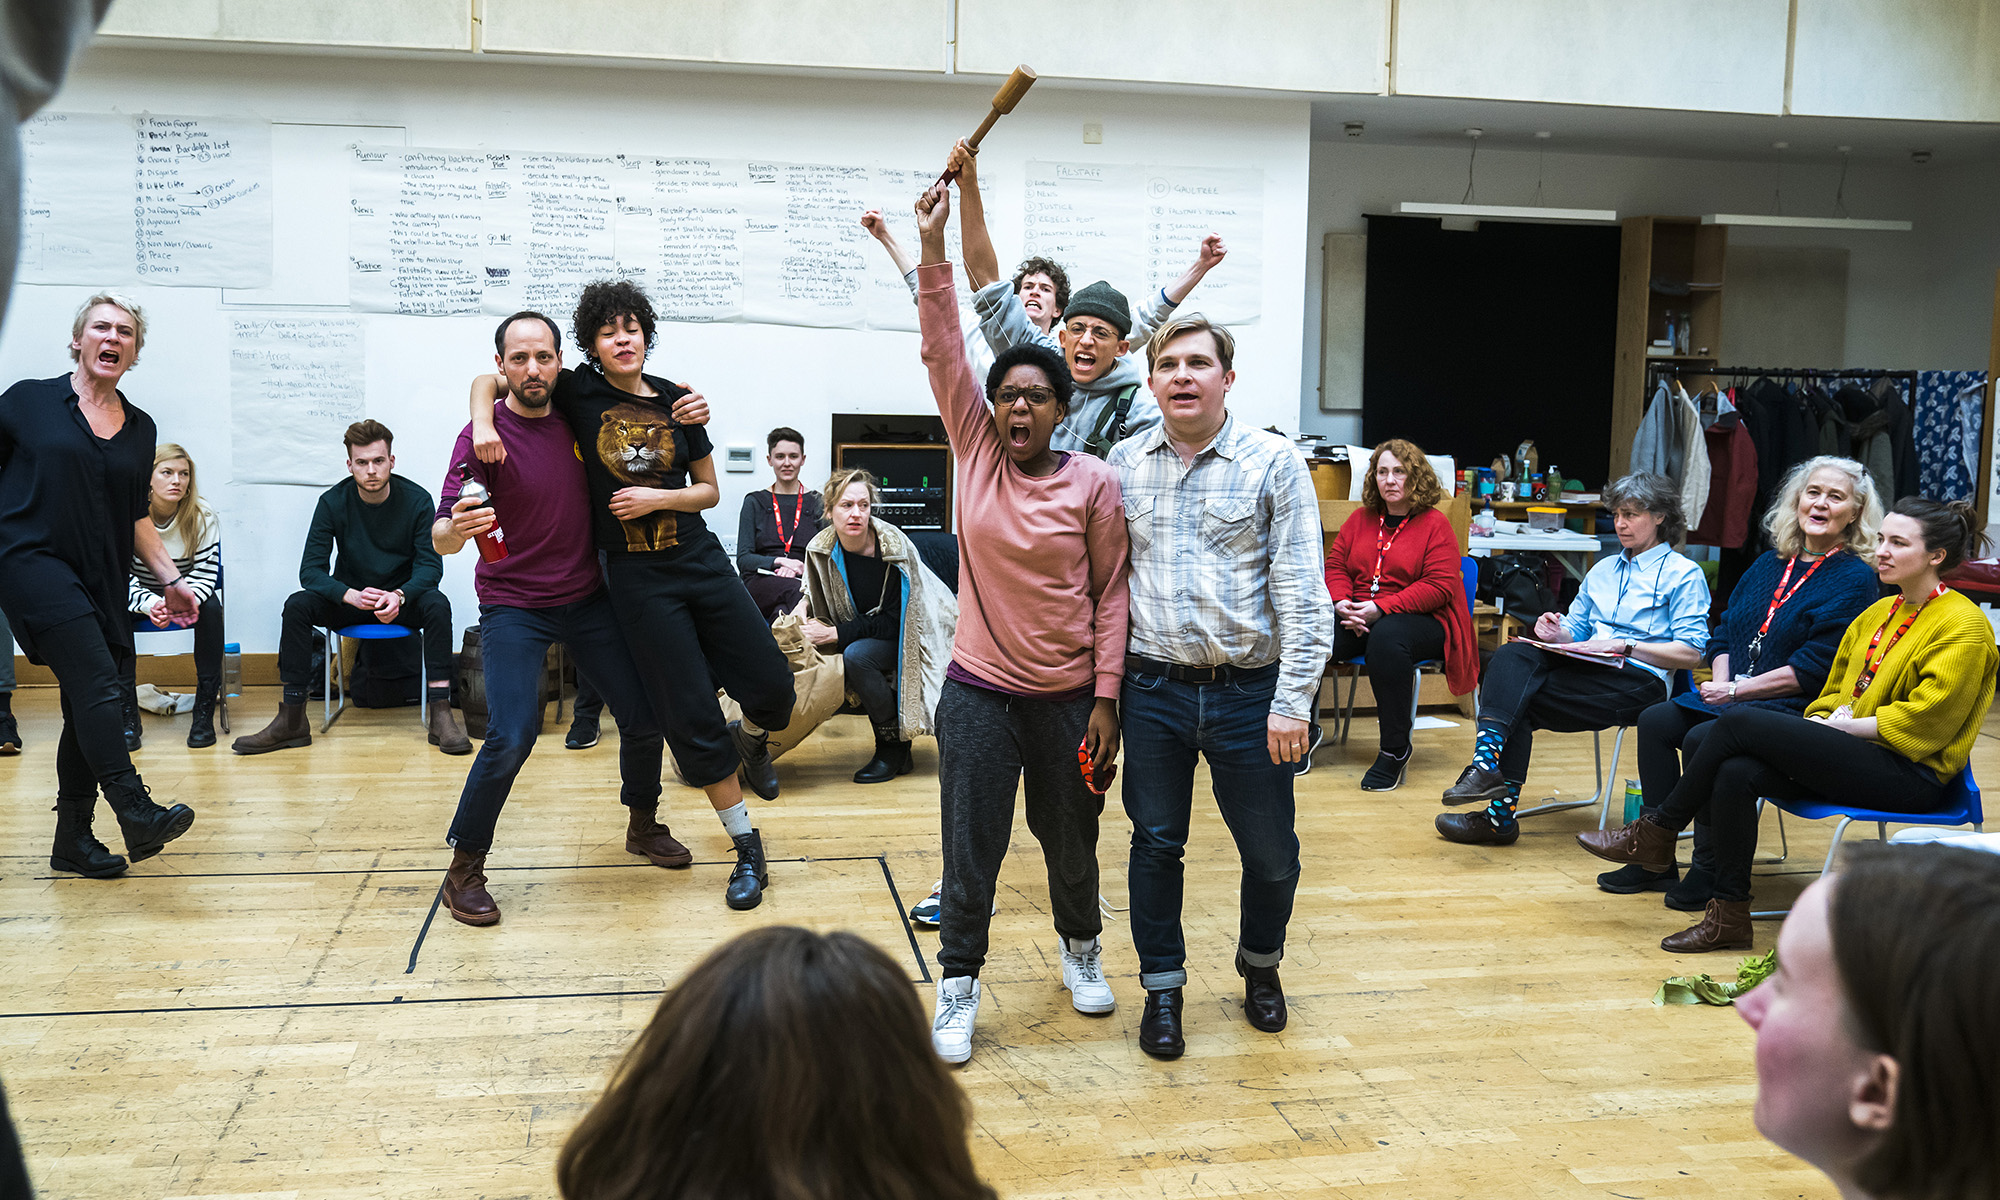 A rehearsal room with some actors punching in the air, one is being lifted, other sit around them in chairs